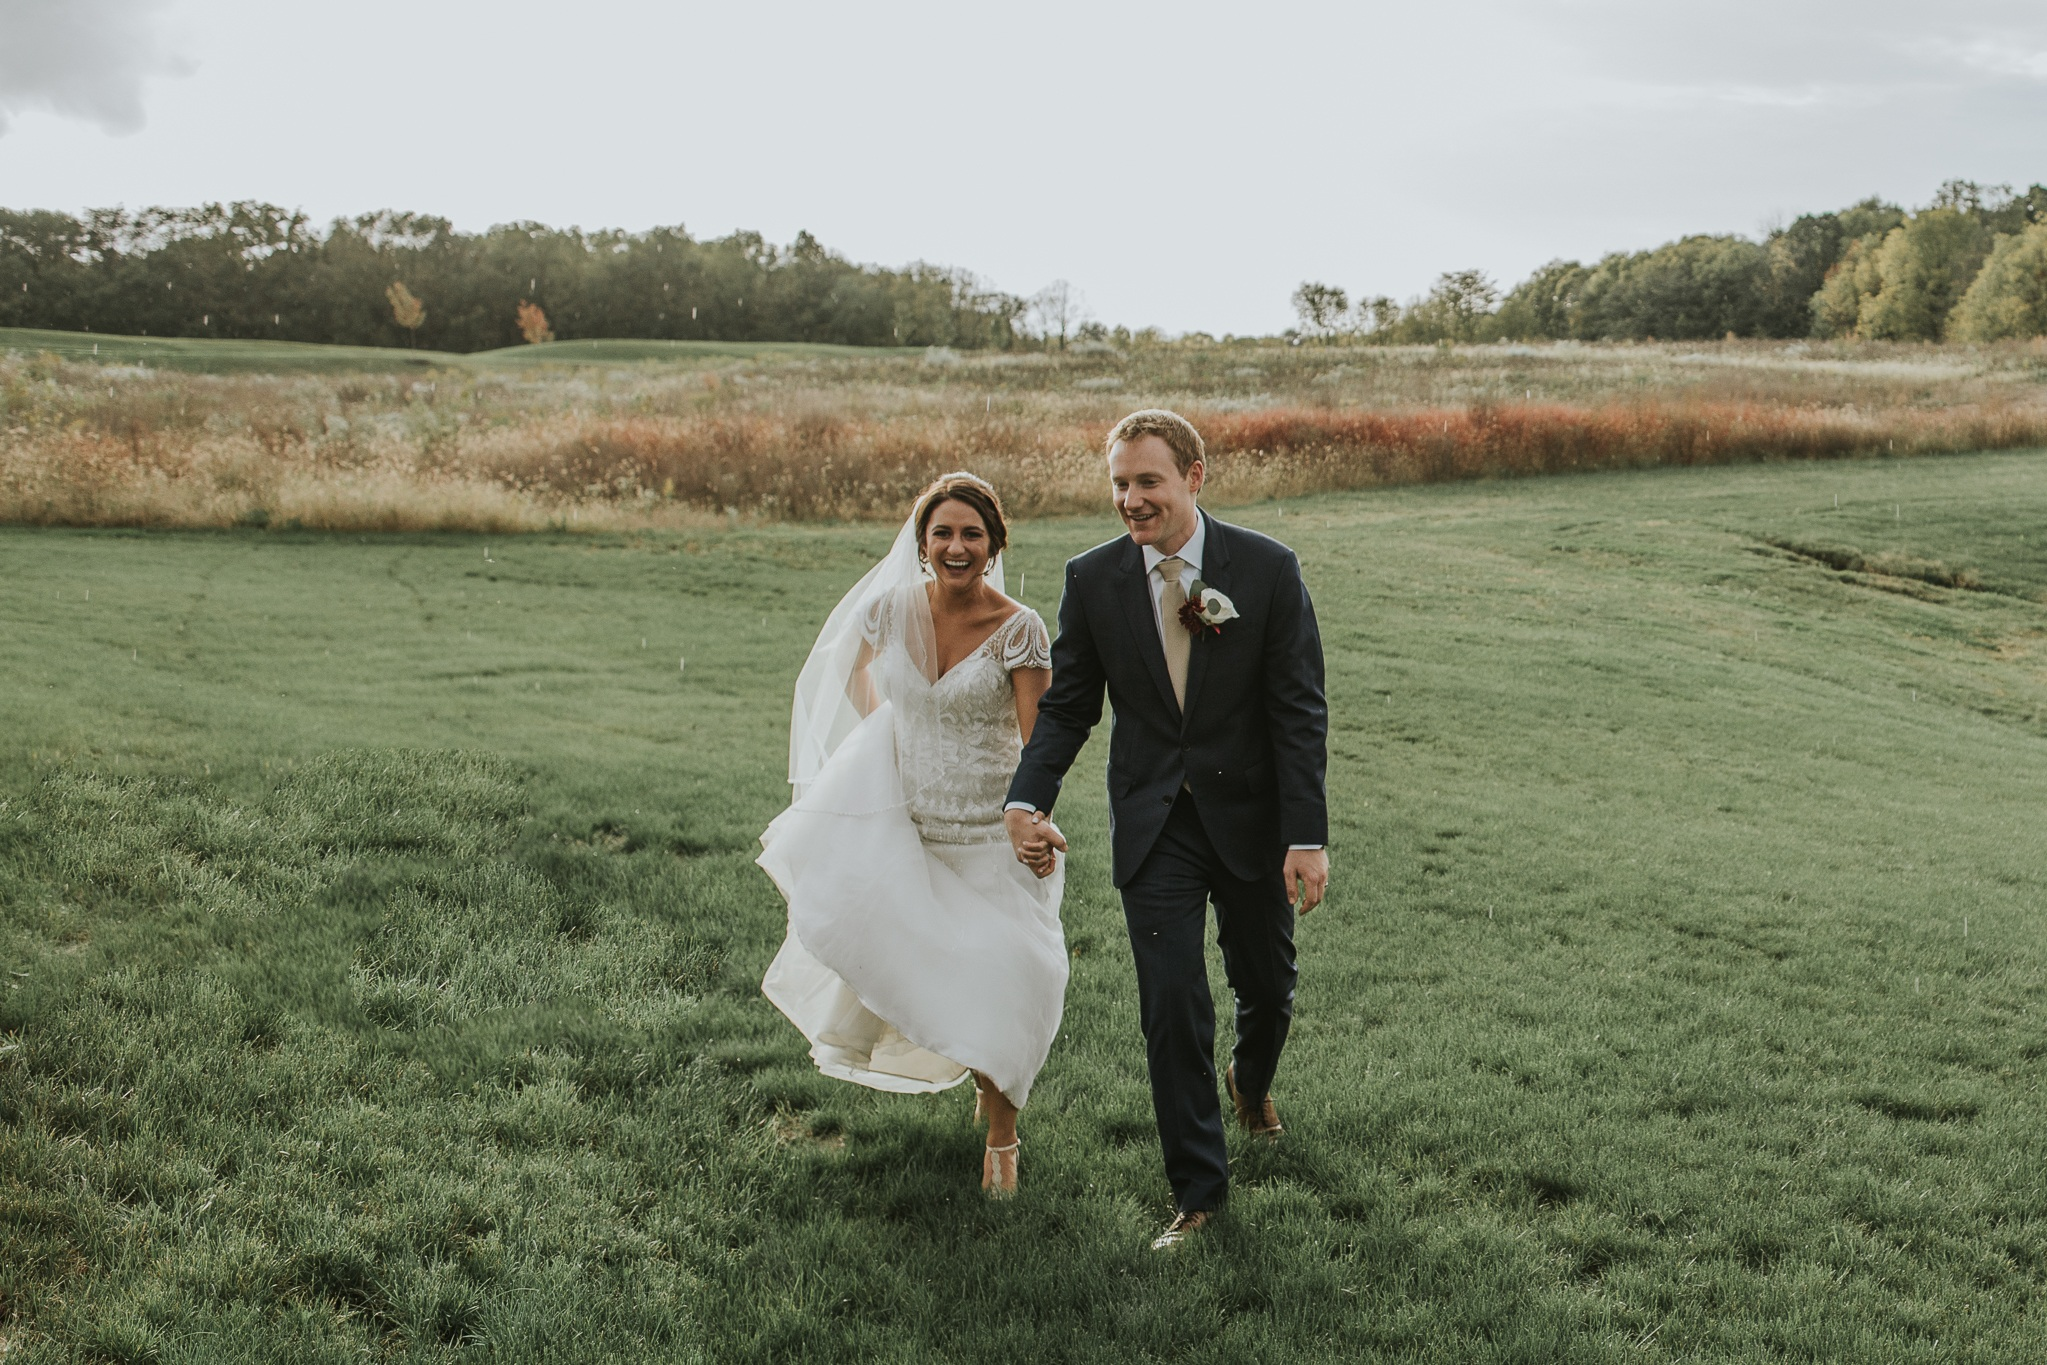 Bride & Groom walking through field while laughing